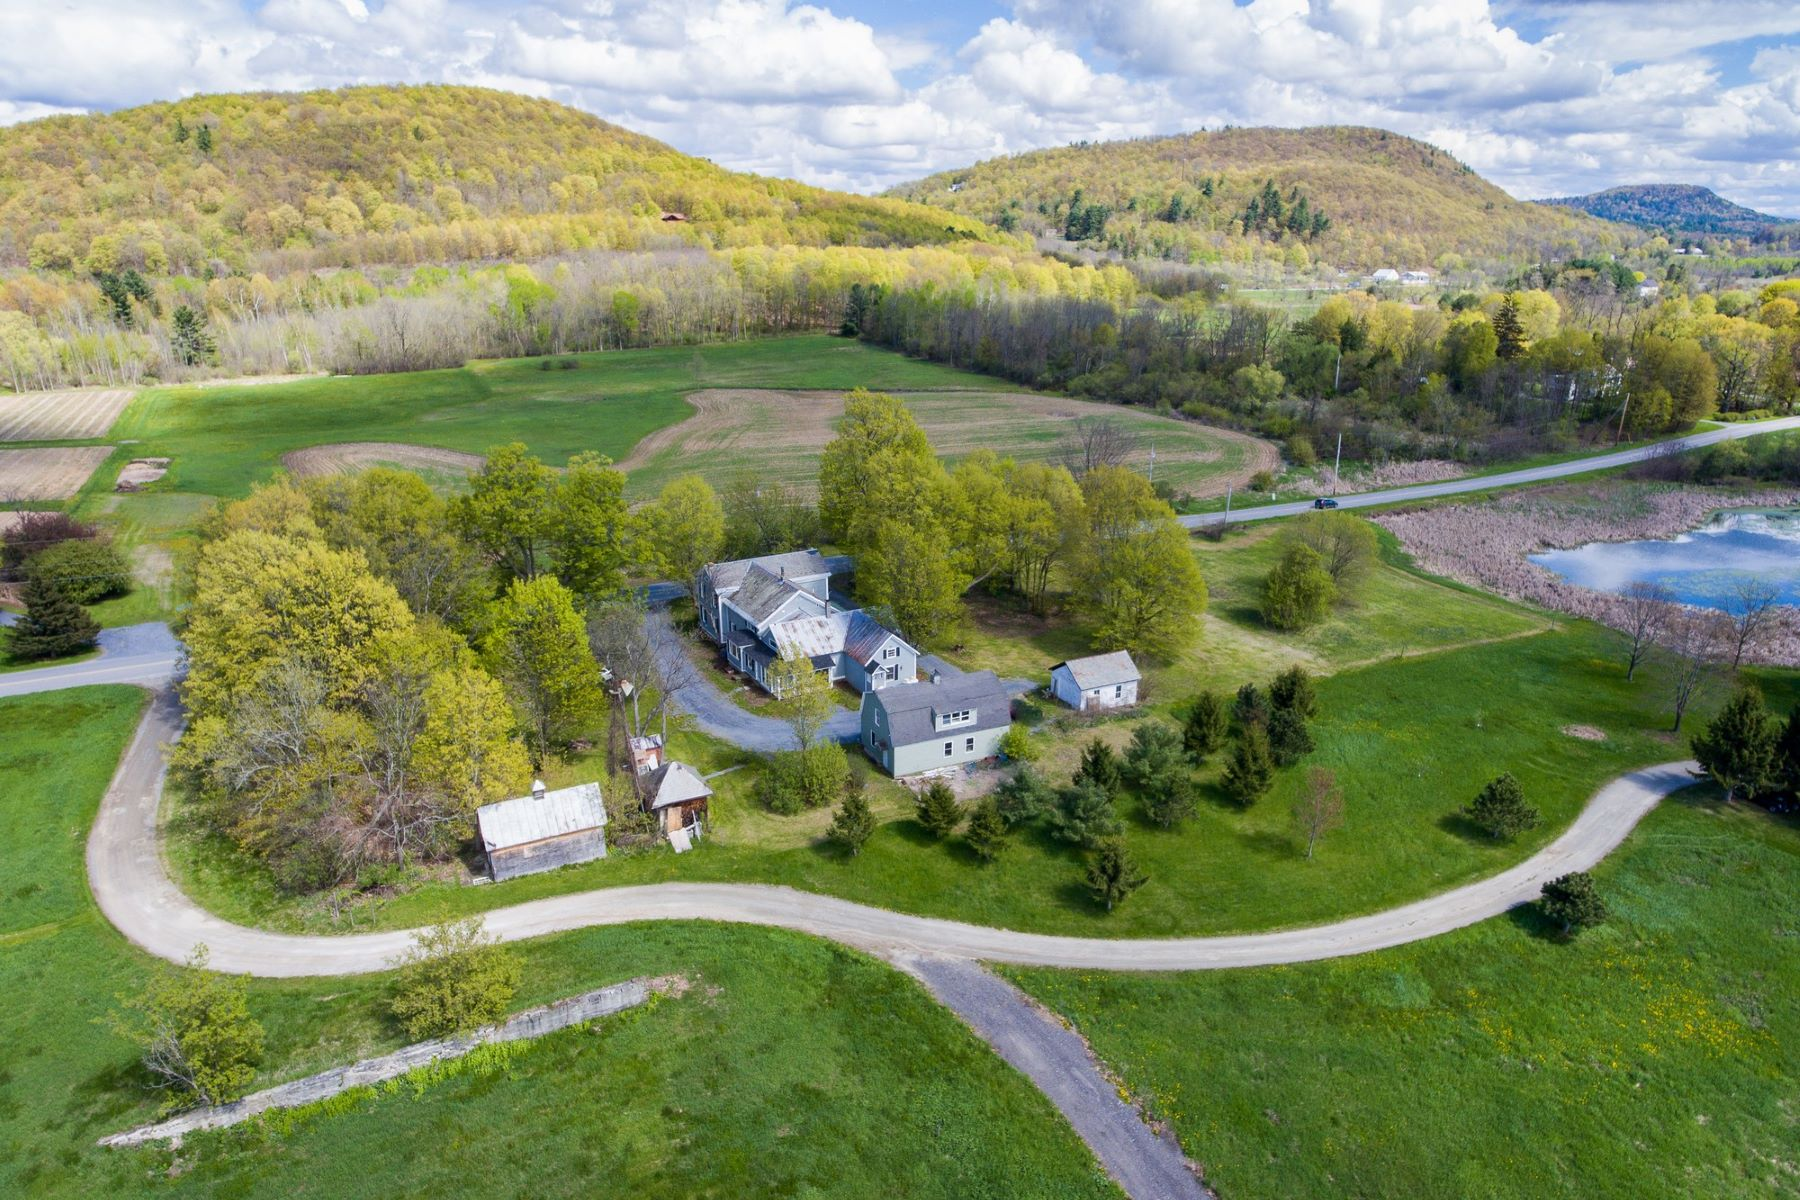 Single Family Homes for Sale at Renovated Charlotte Village with Adirondack Views 2346 Greenbush Road Charlotte, Vermont 05445 United States